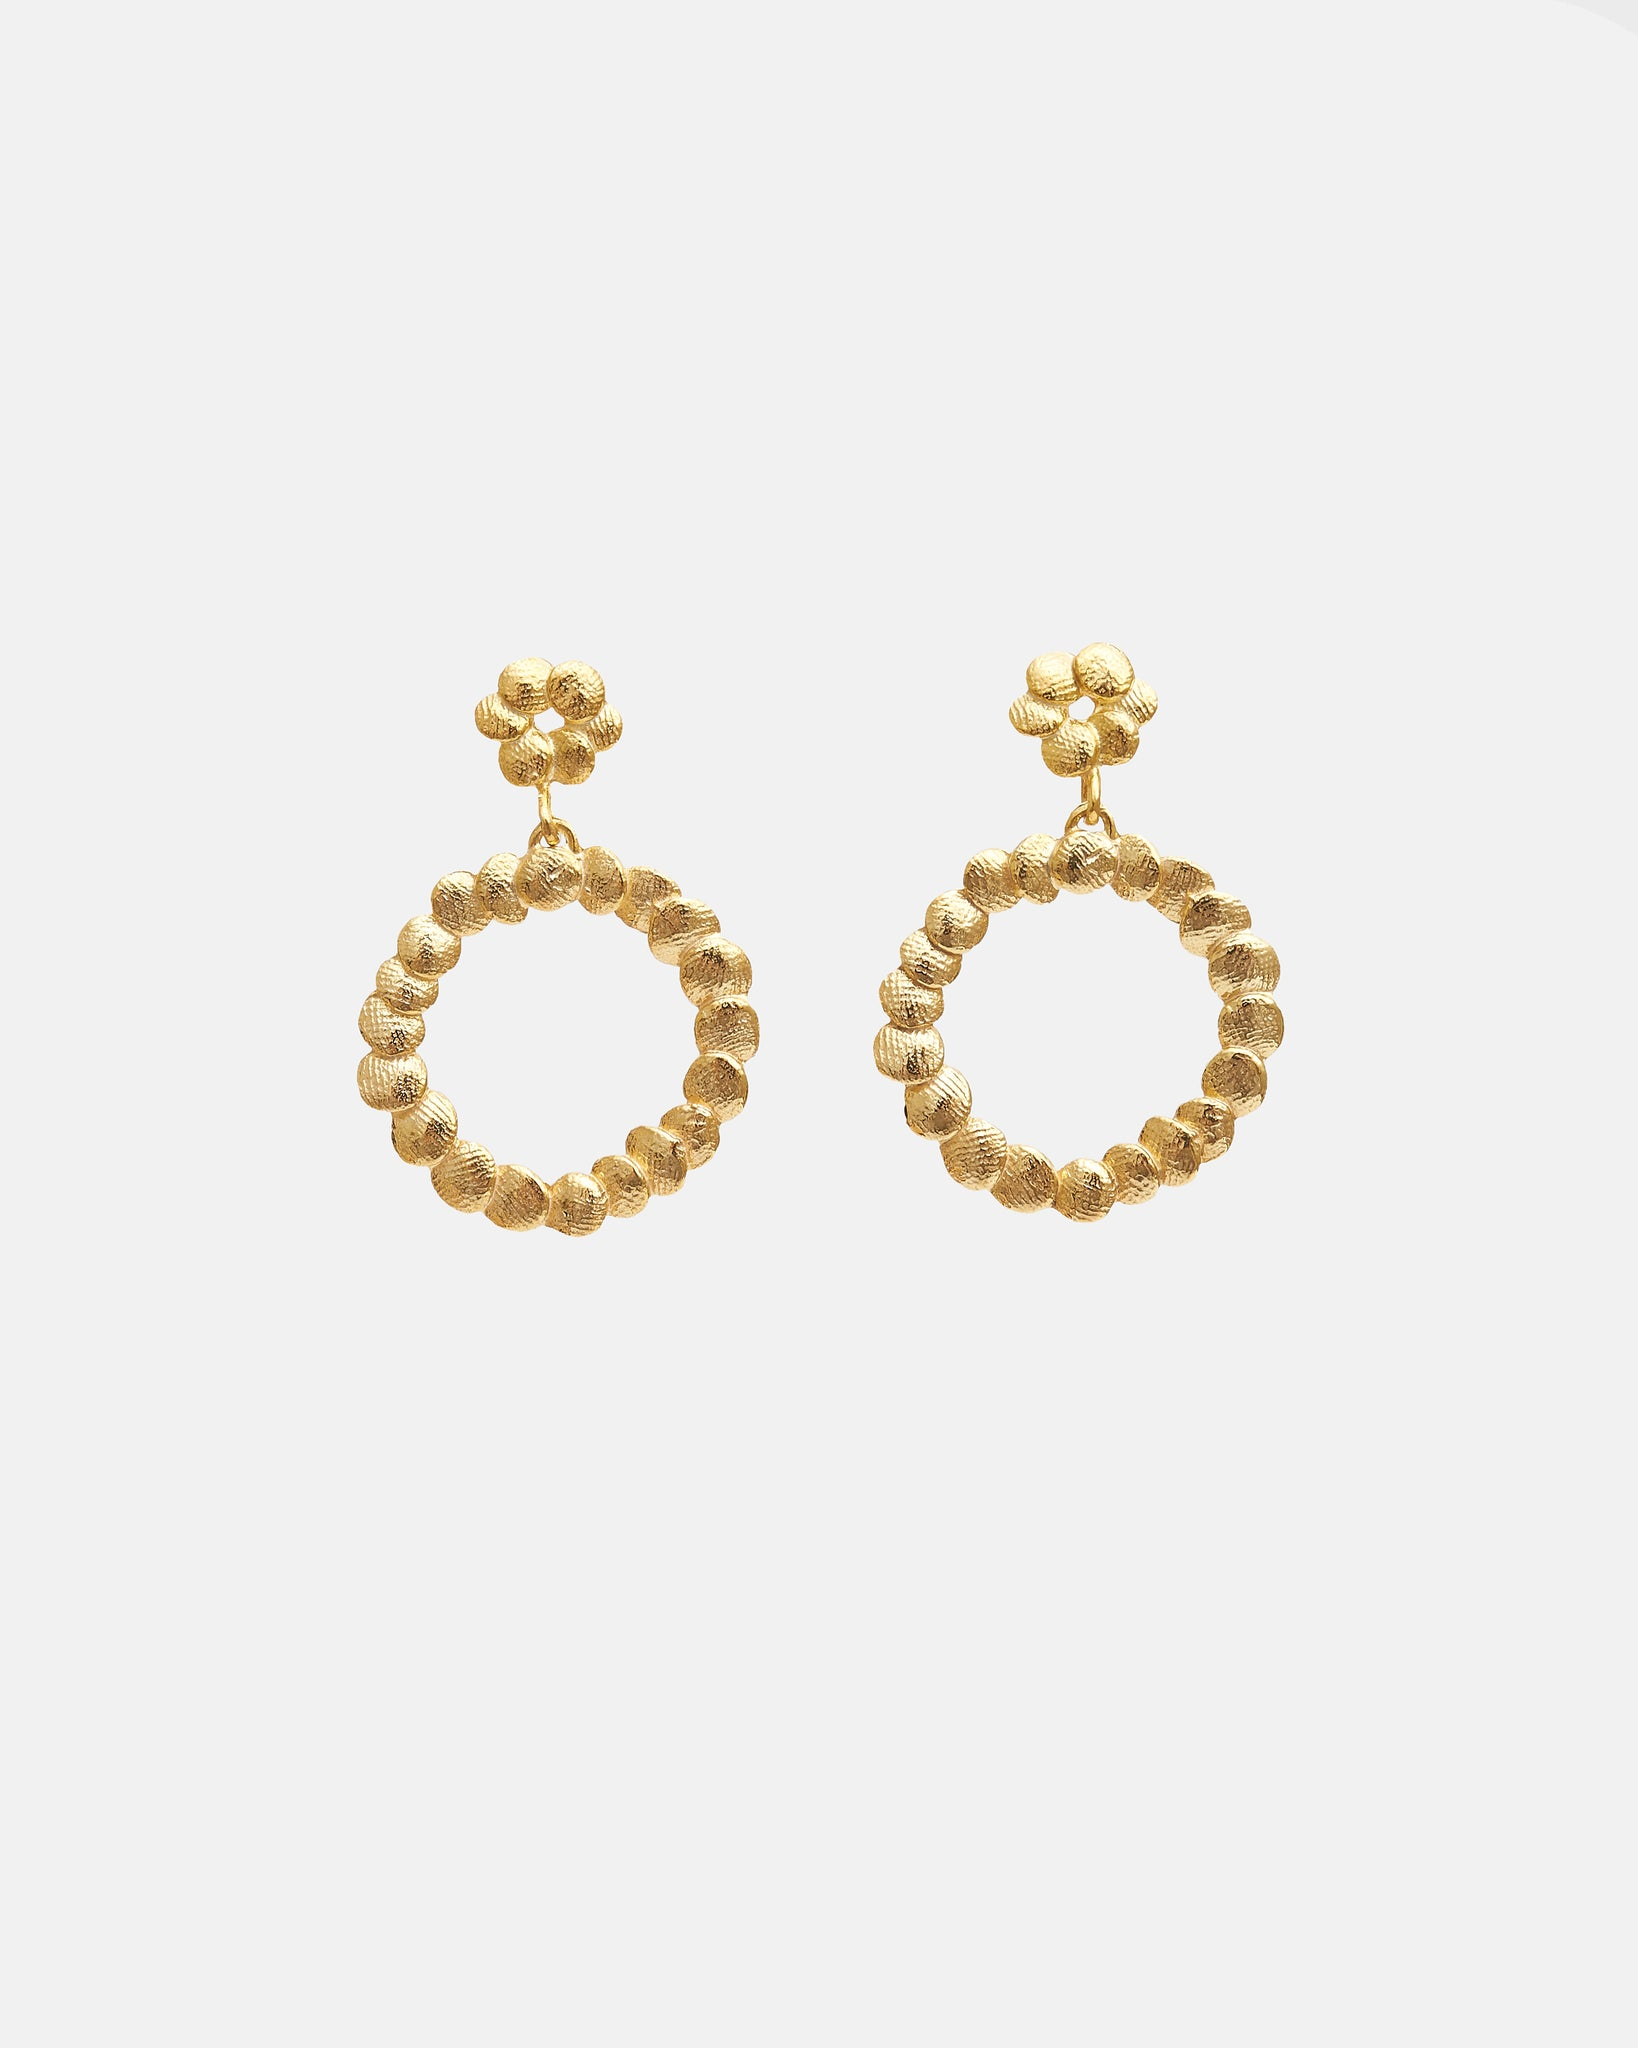 MINI DOUBLE CIRCLE EARRINGS - GOLD